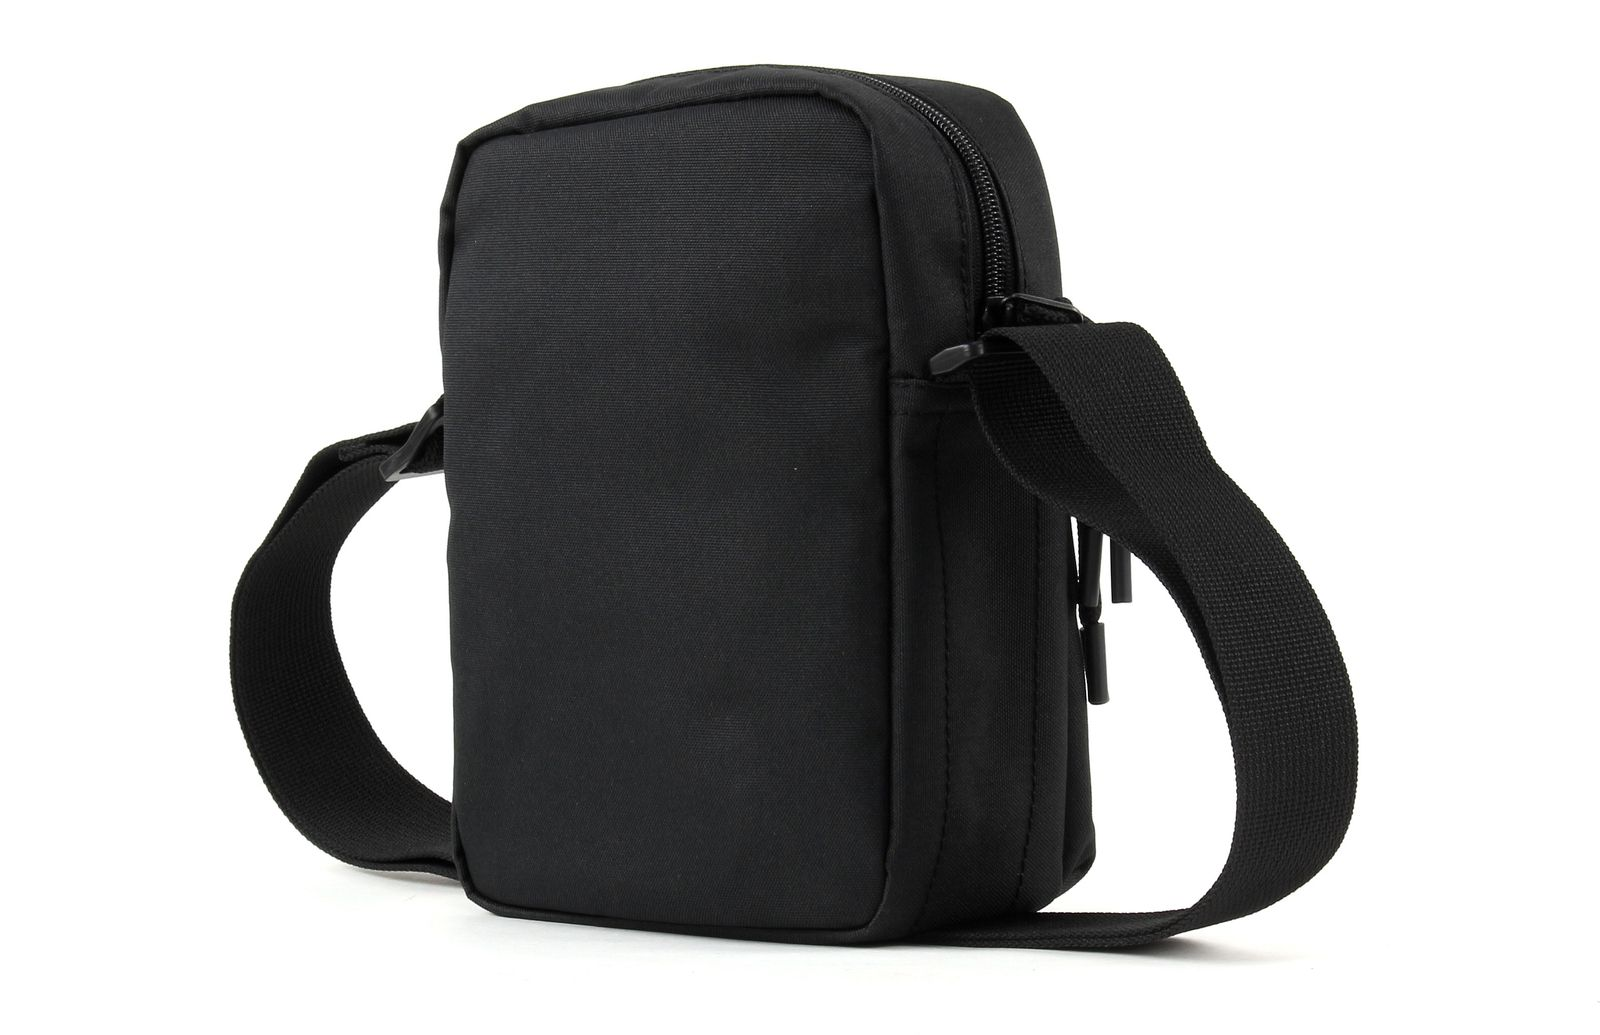 c295a242d235b ... CloseLACOSTE Neocroc Vertical Camera Bag Black   70